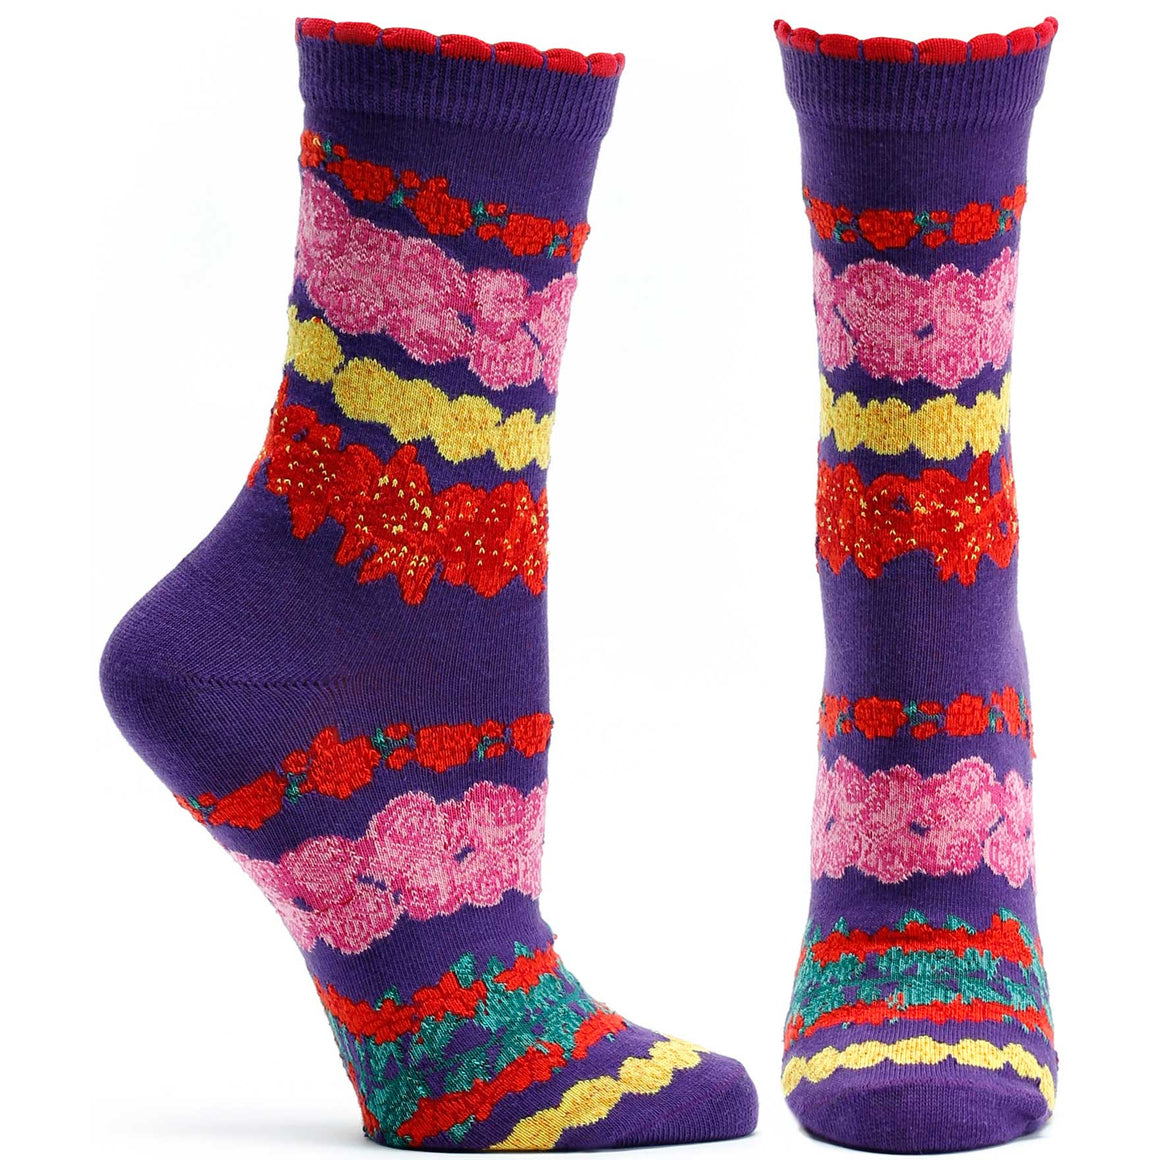 Ozone Design Womens Wrap Around Garlands Floral Sock in Violet